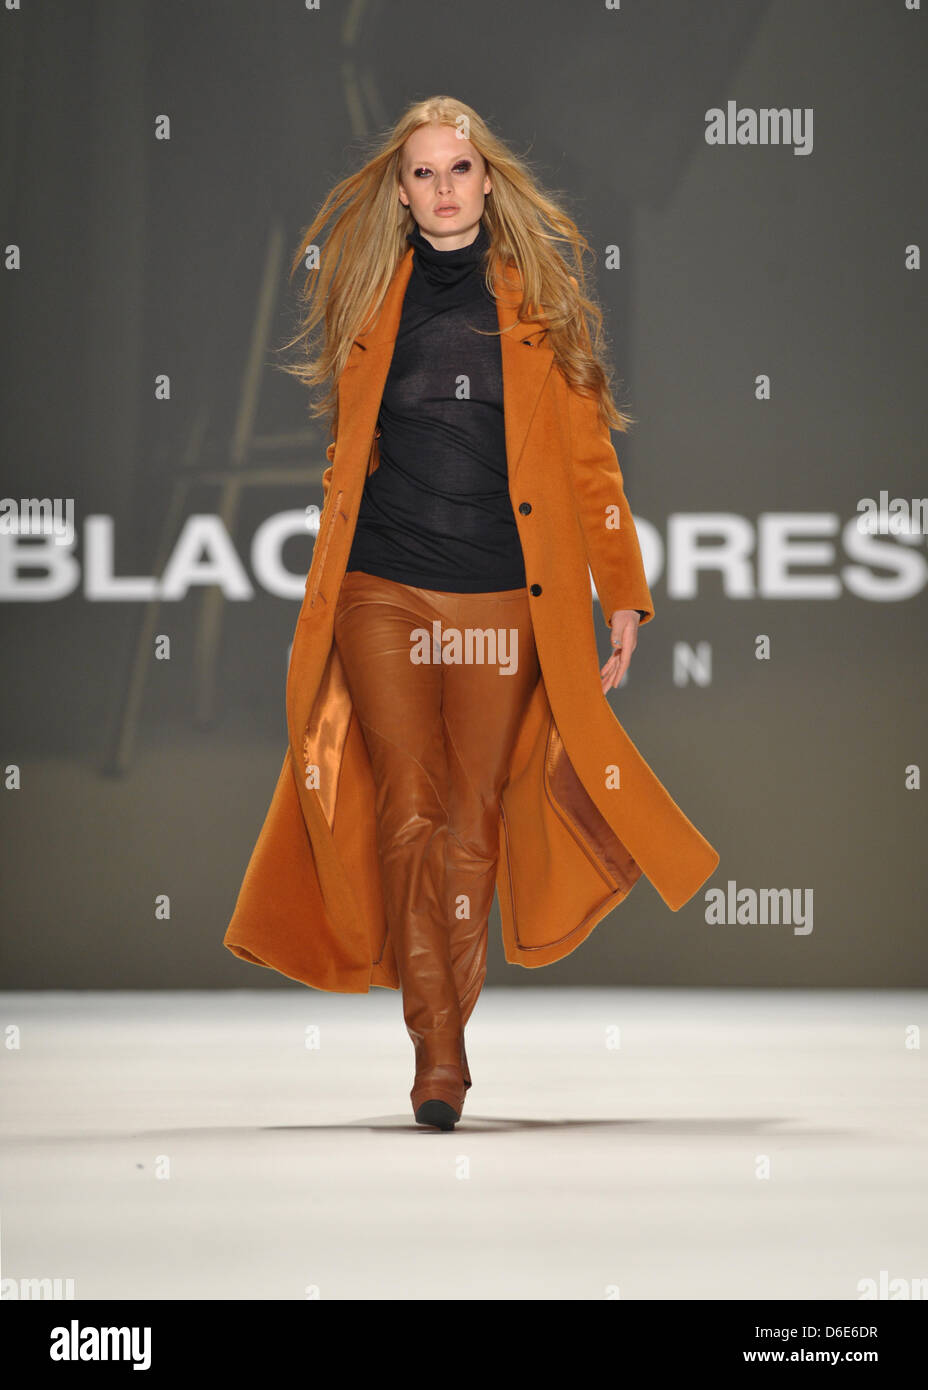 new style d23db 5fd8a A model presents a creation at the Blacky Dress fashion show ...